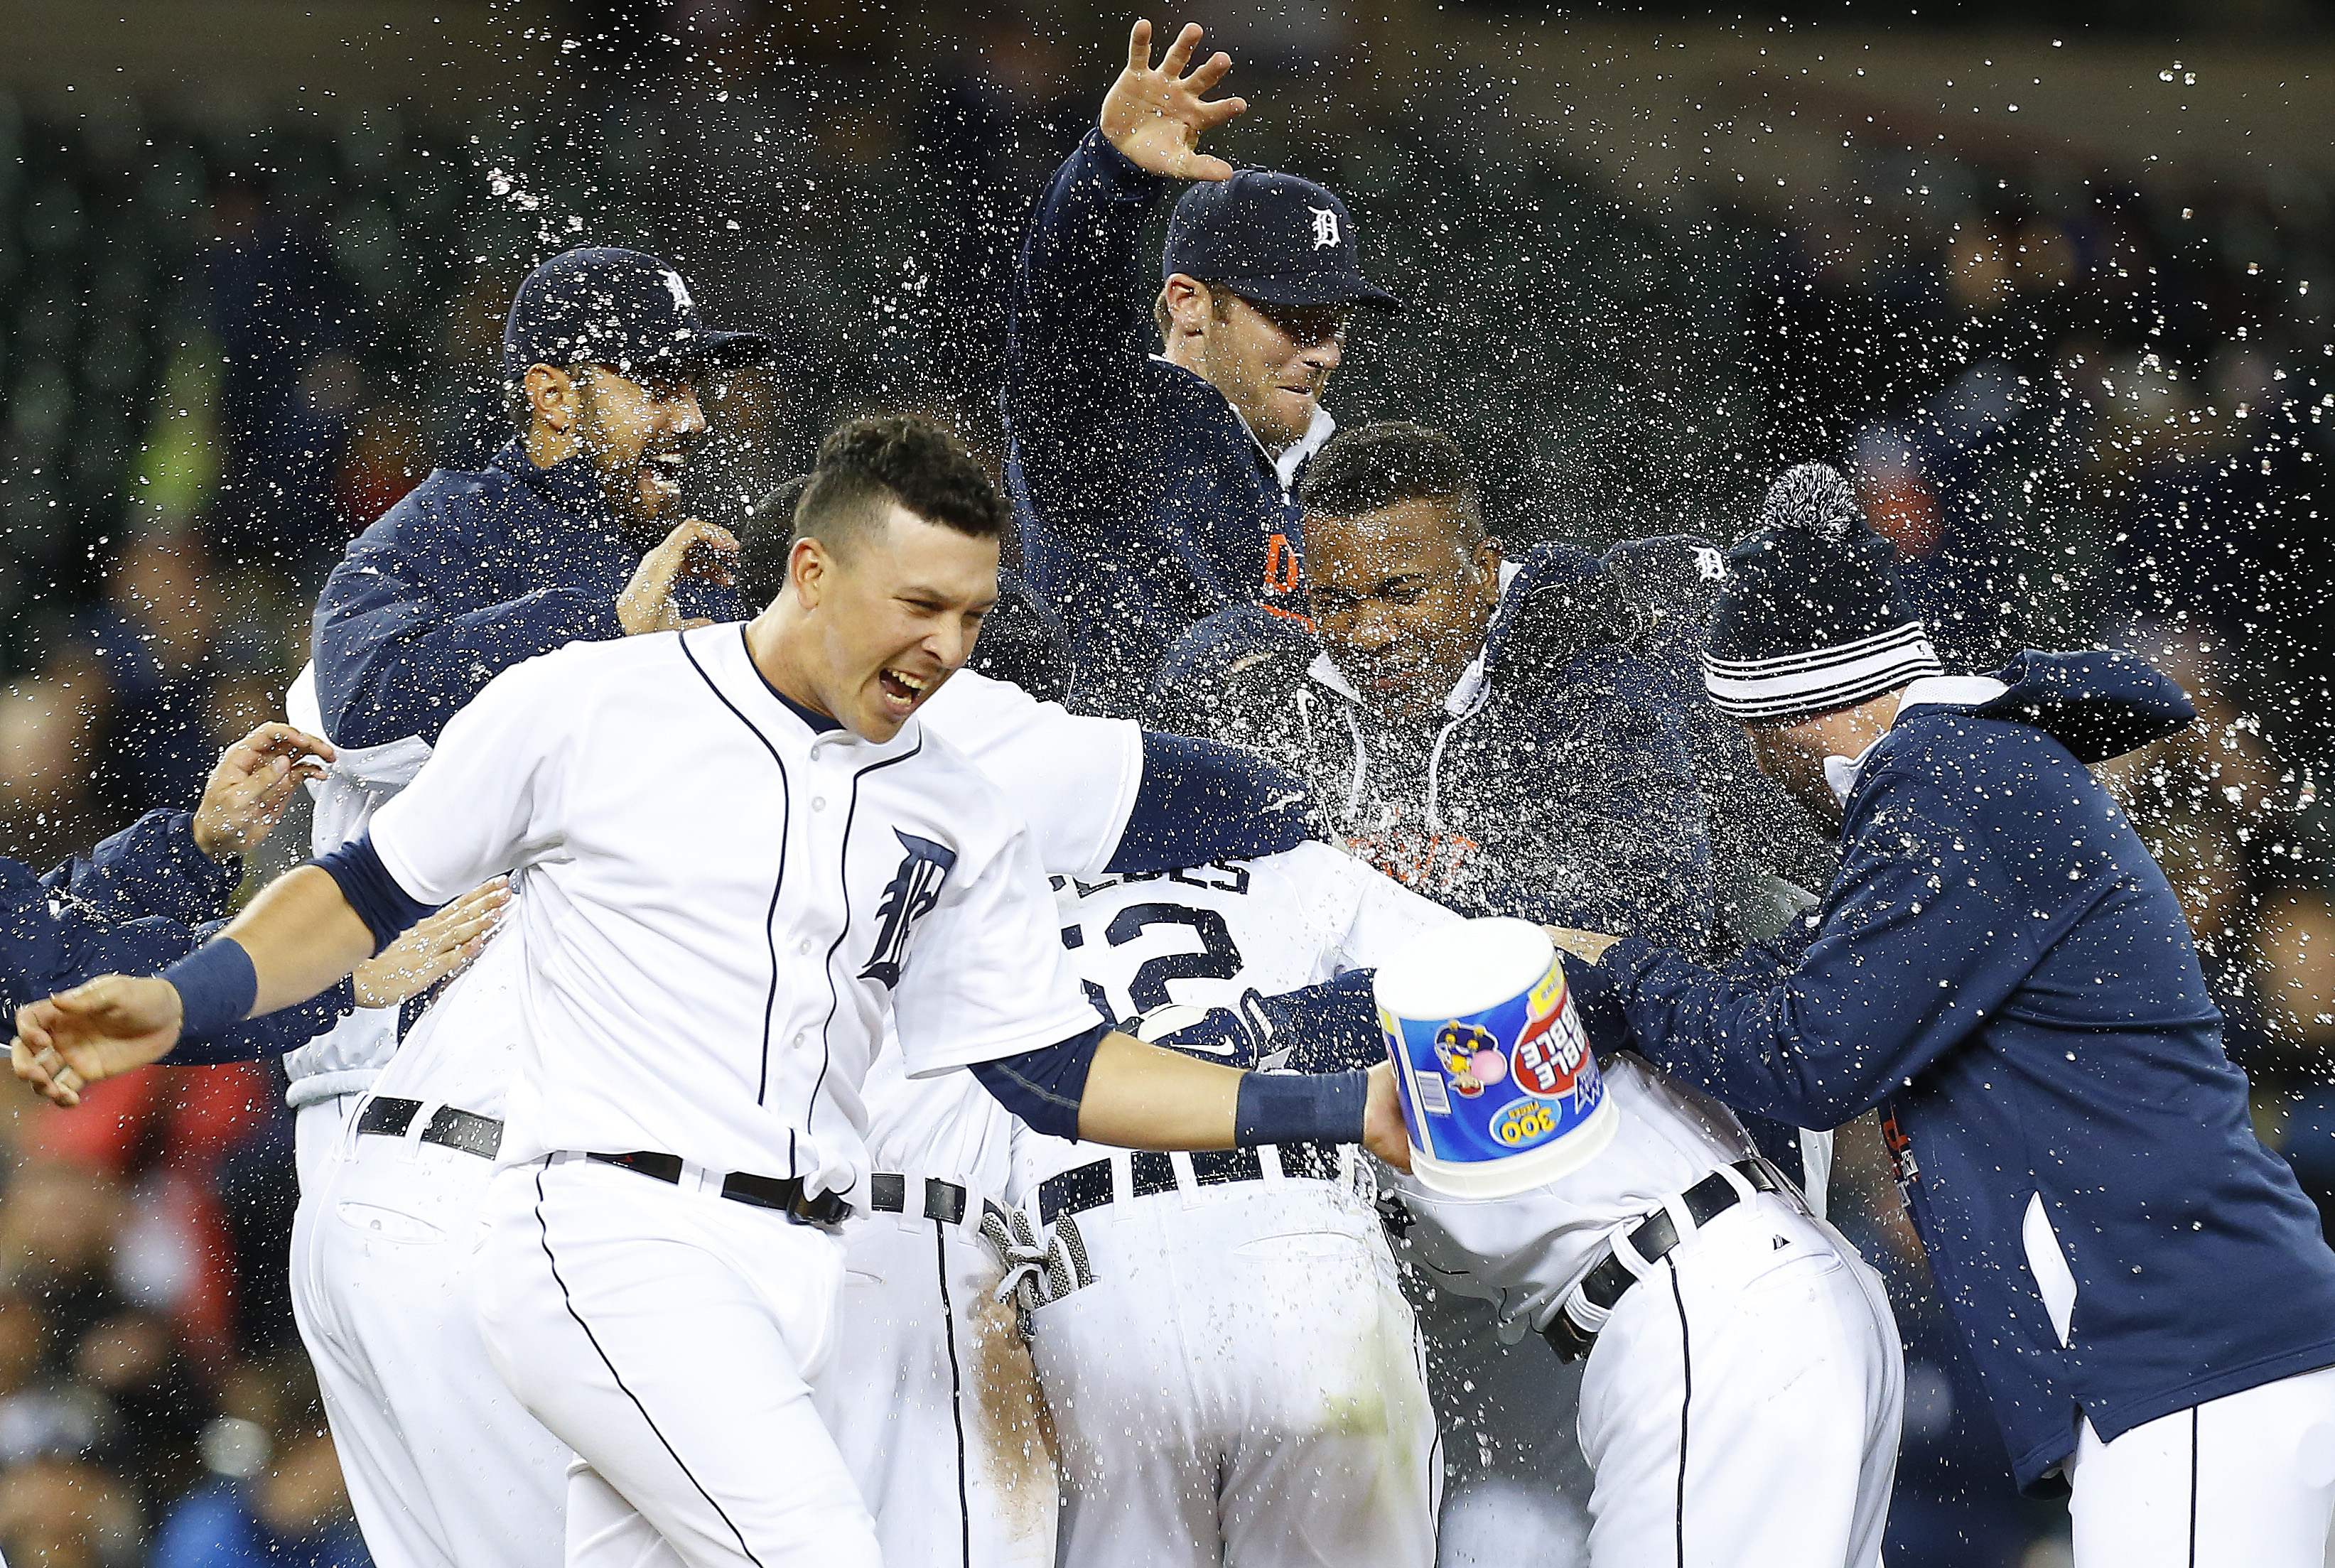 Detroit Tigers players celebrate an Ian Kinsler game winning single scoring Anthony Gose against the Minnesota Twins in the tenth inning of a baseball game in Detroit Tuesday, May 12, 2015. Detroit won 2-1. (AP Photo/Paul Sancya)